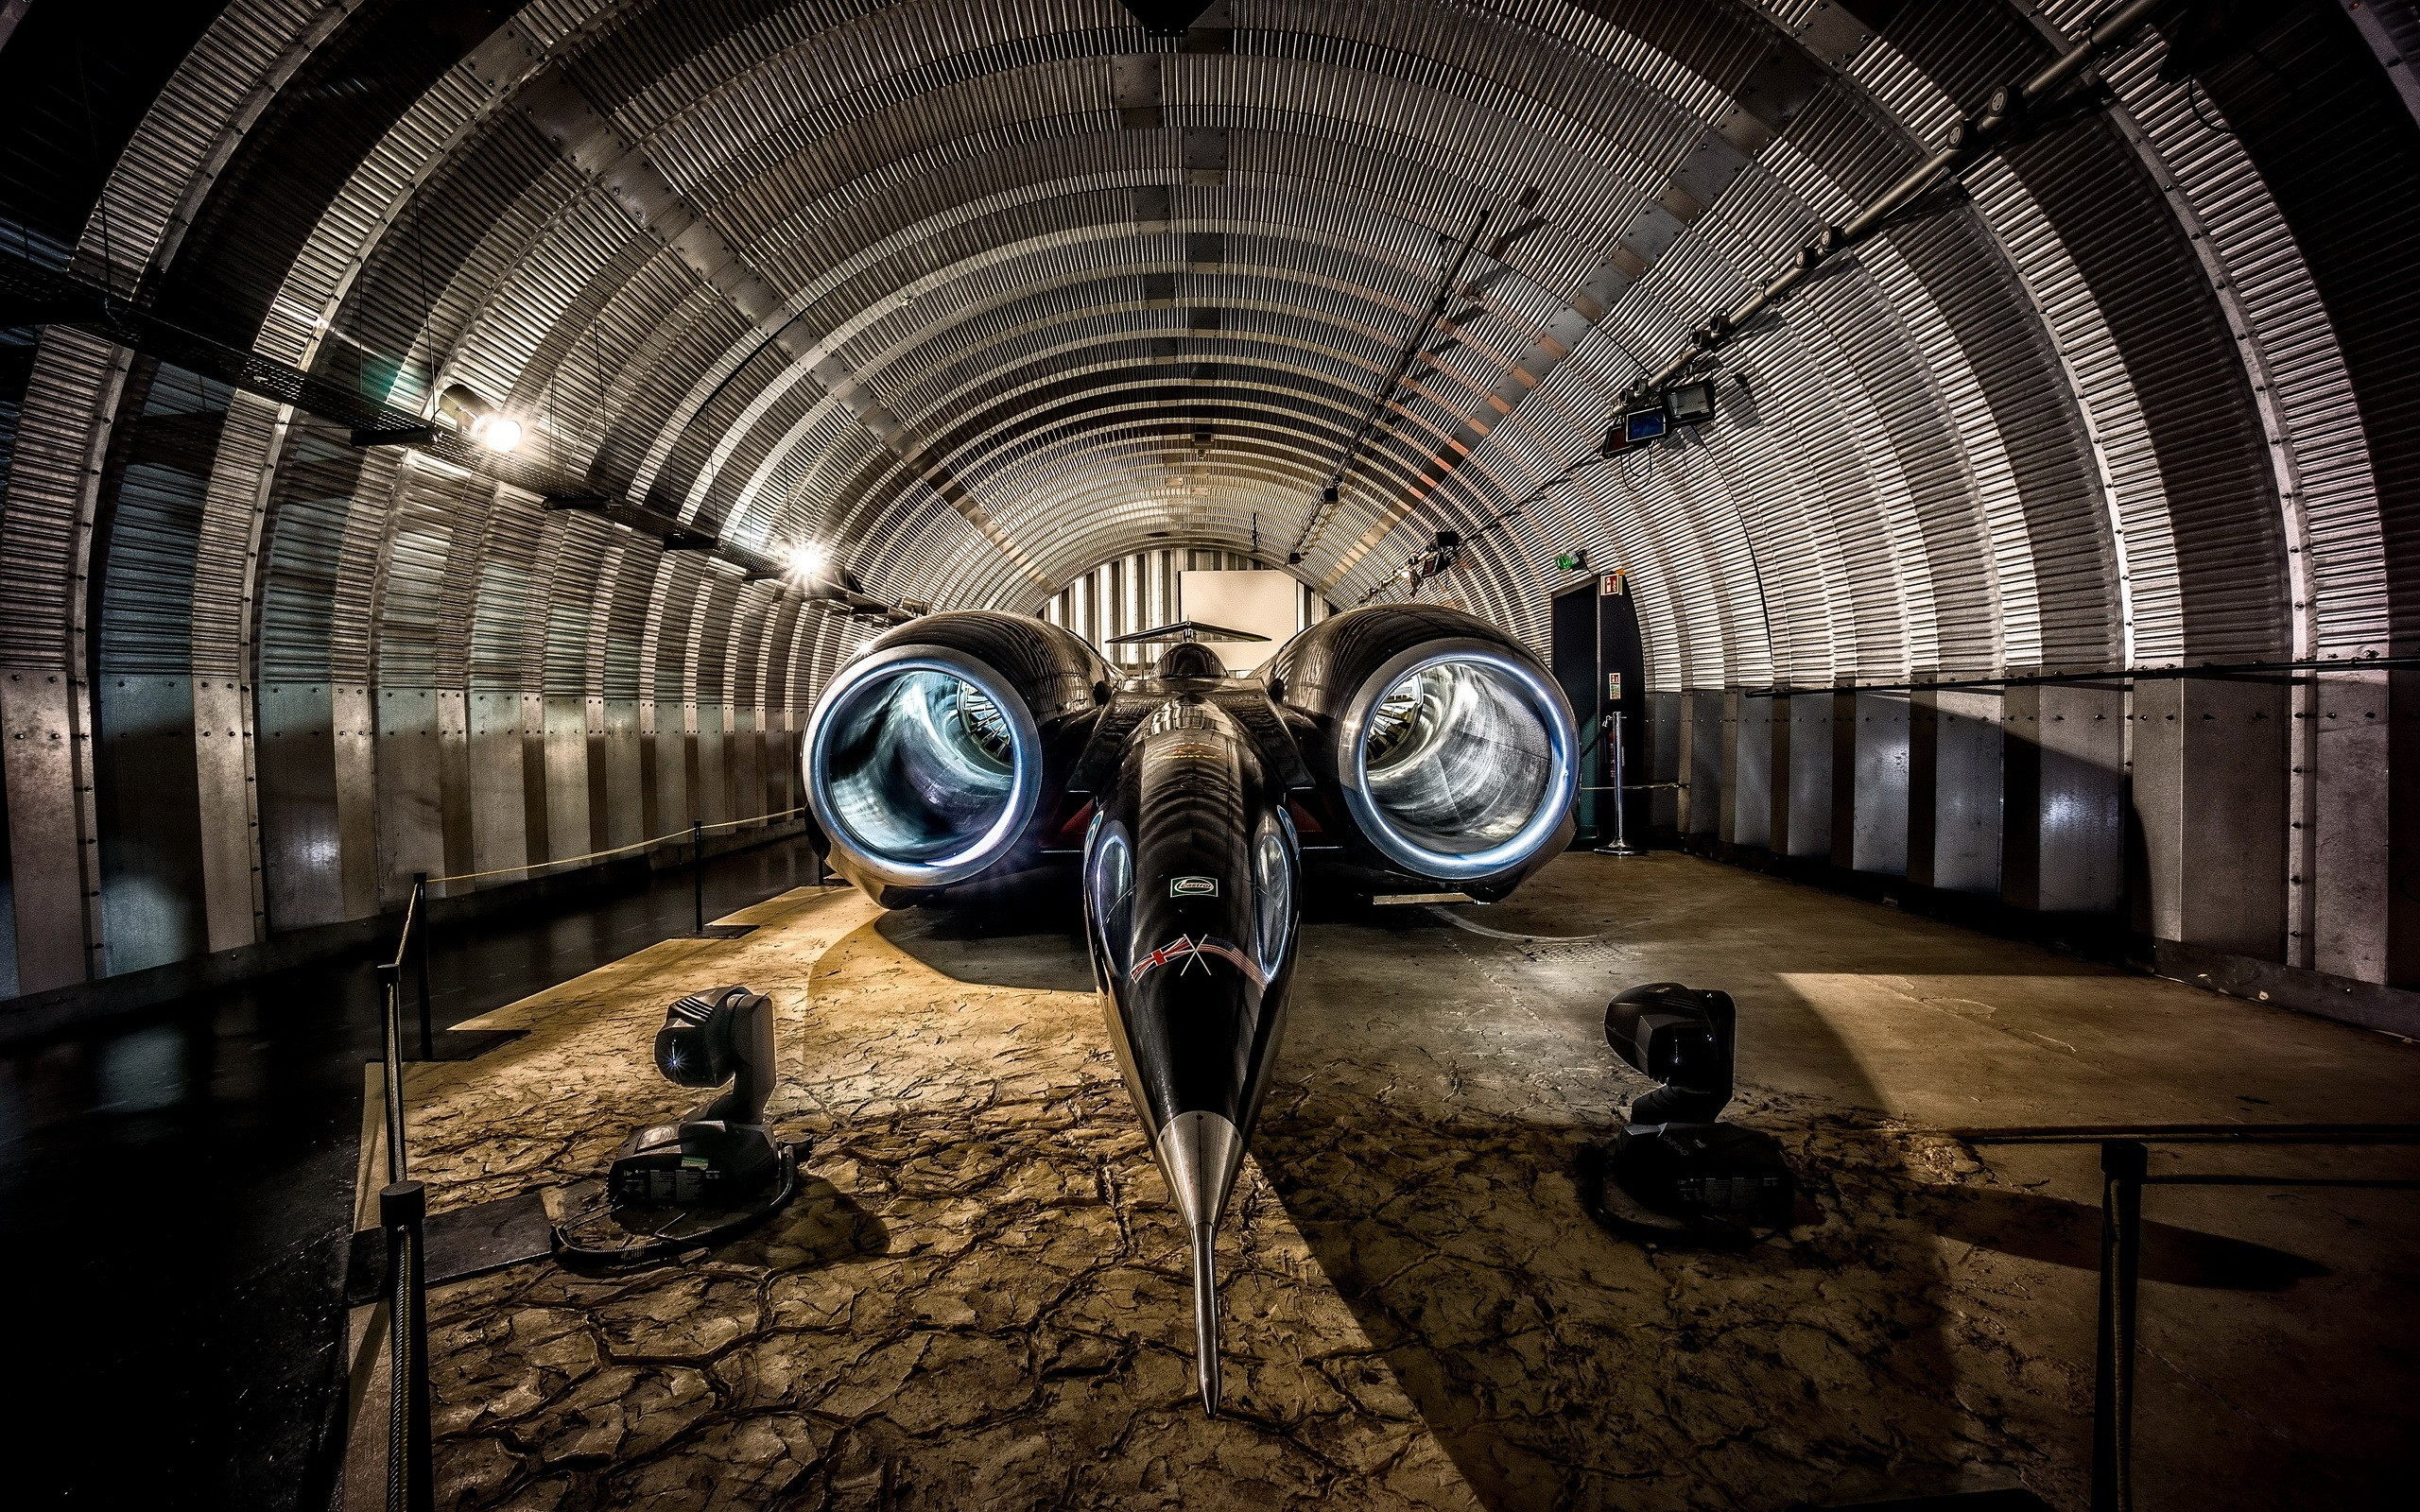 Vintage Cars In Garage Wallpaper Hd Speed Car Thrust Ssc In The Hangar Wallpapers And Images